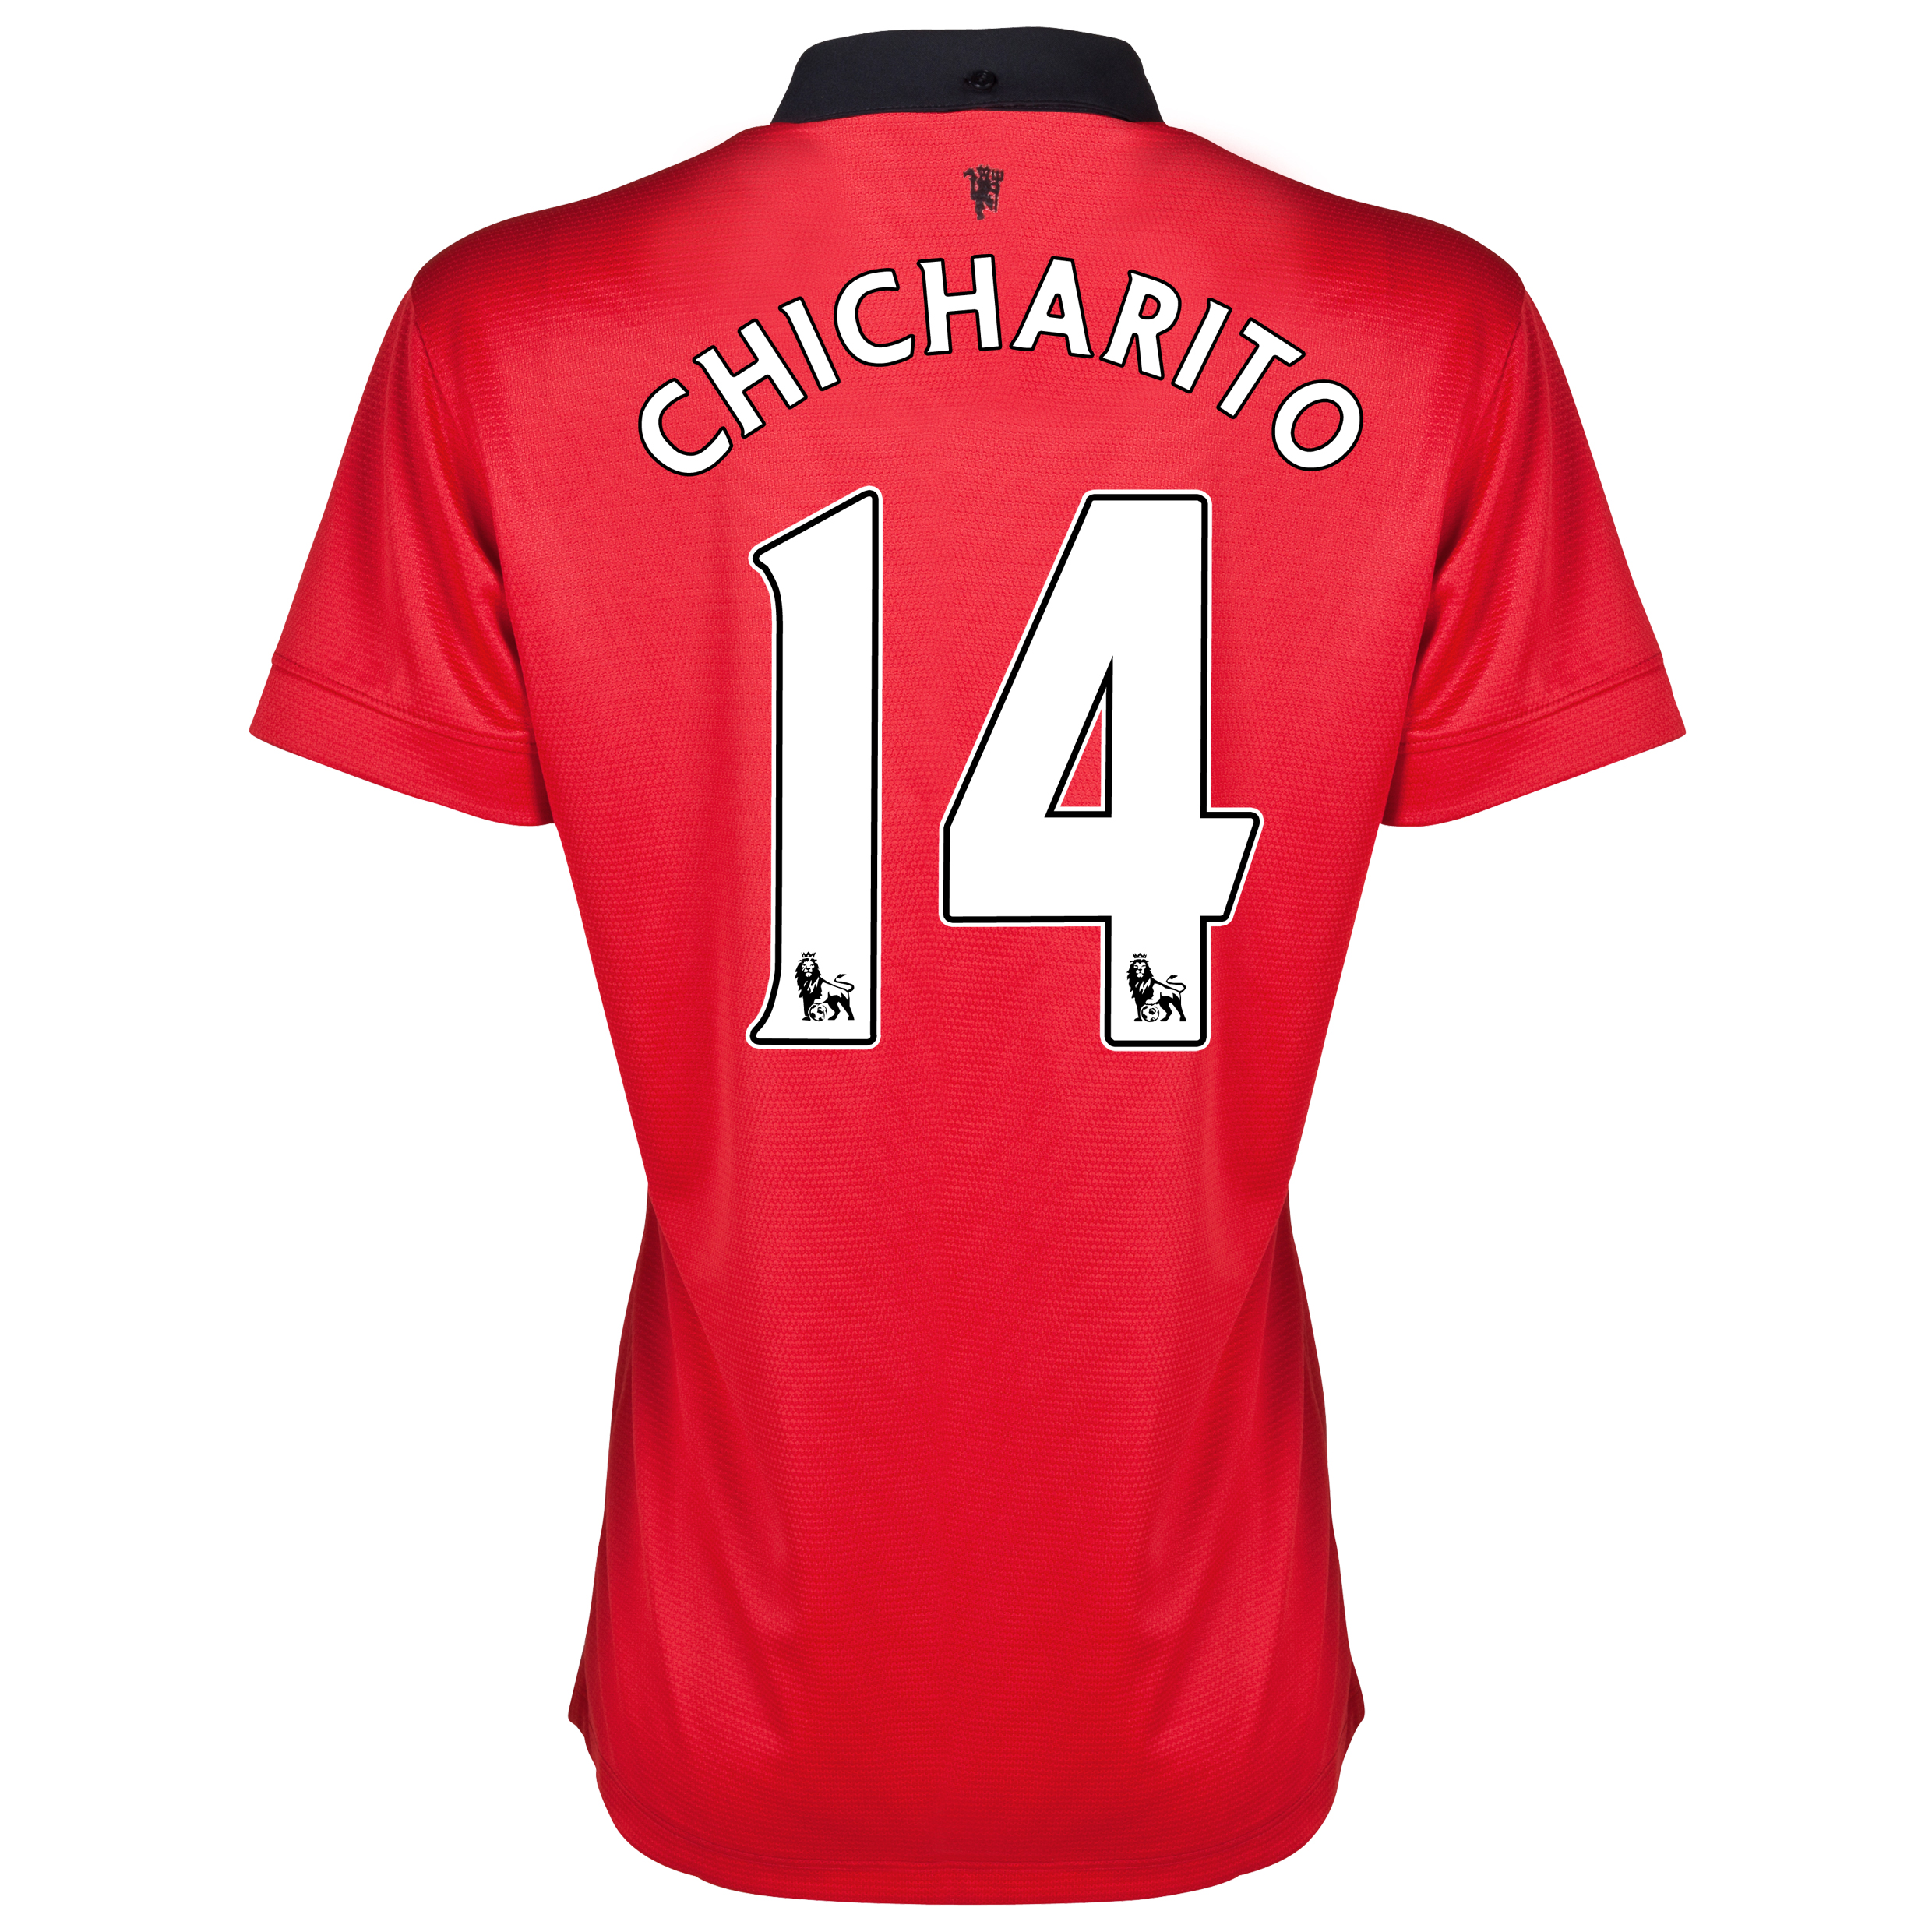 Manchester United Home Shirt 2013/14 - Womens with Chicharito 14 printing